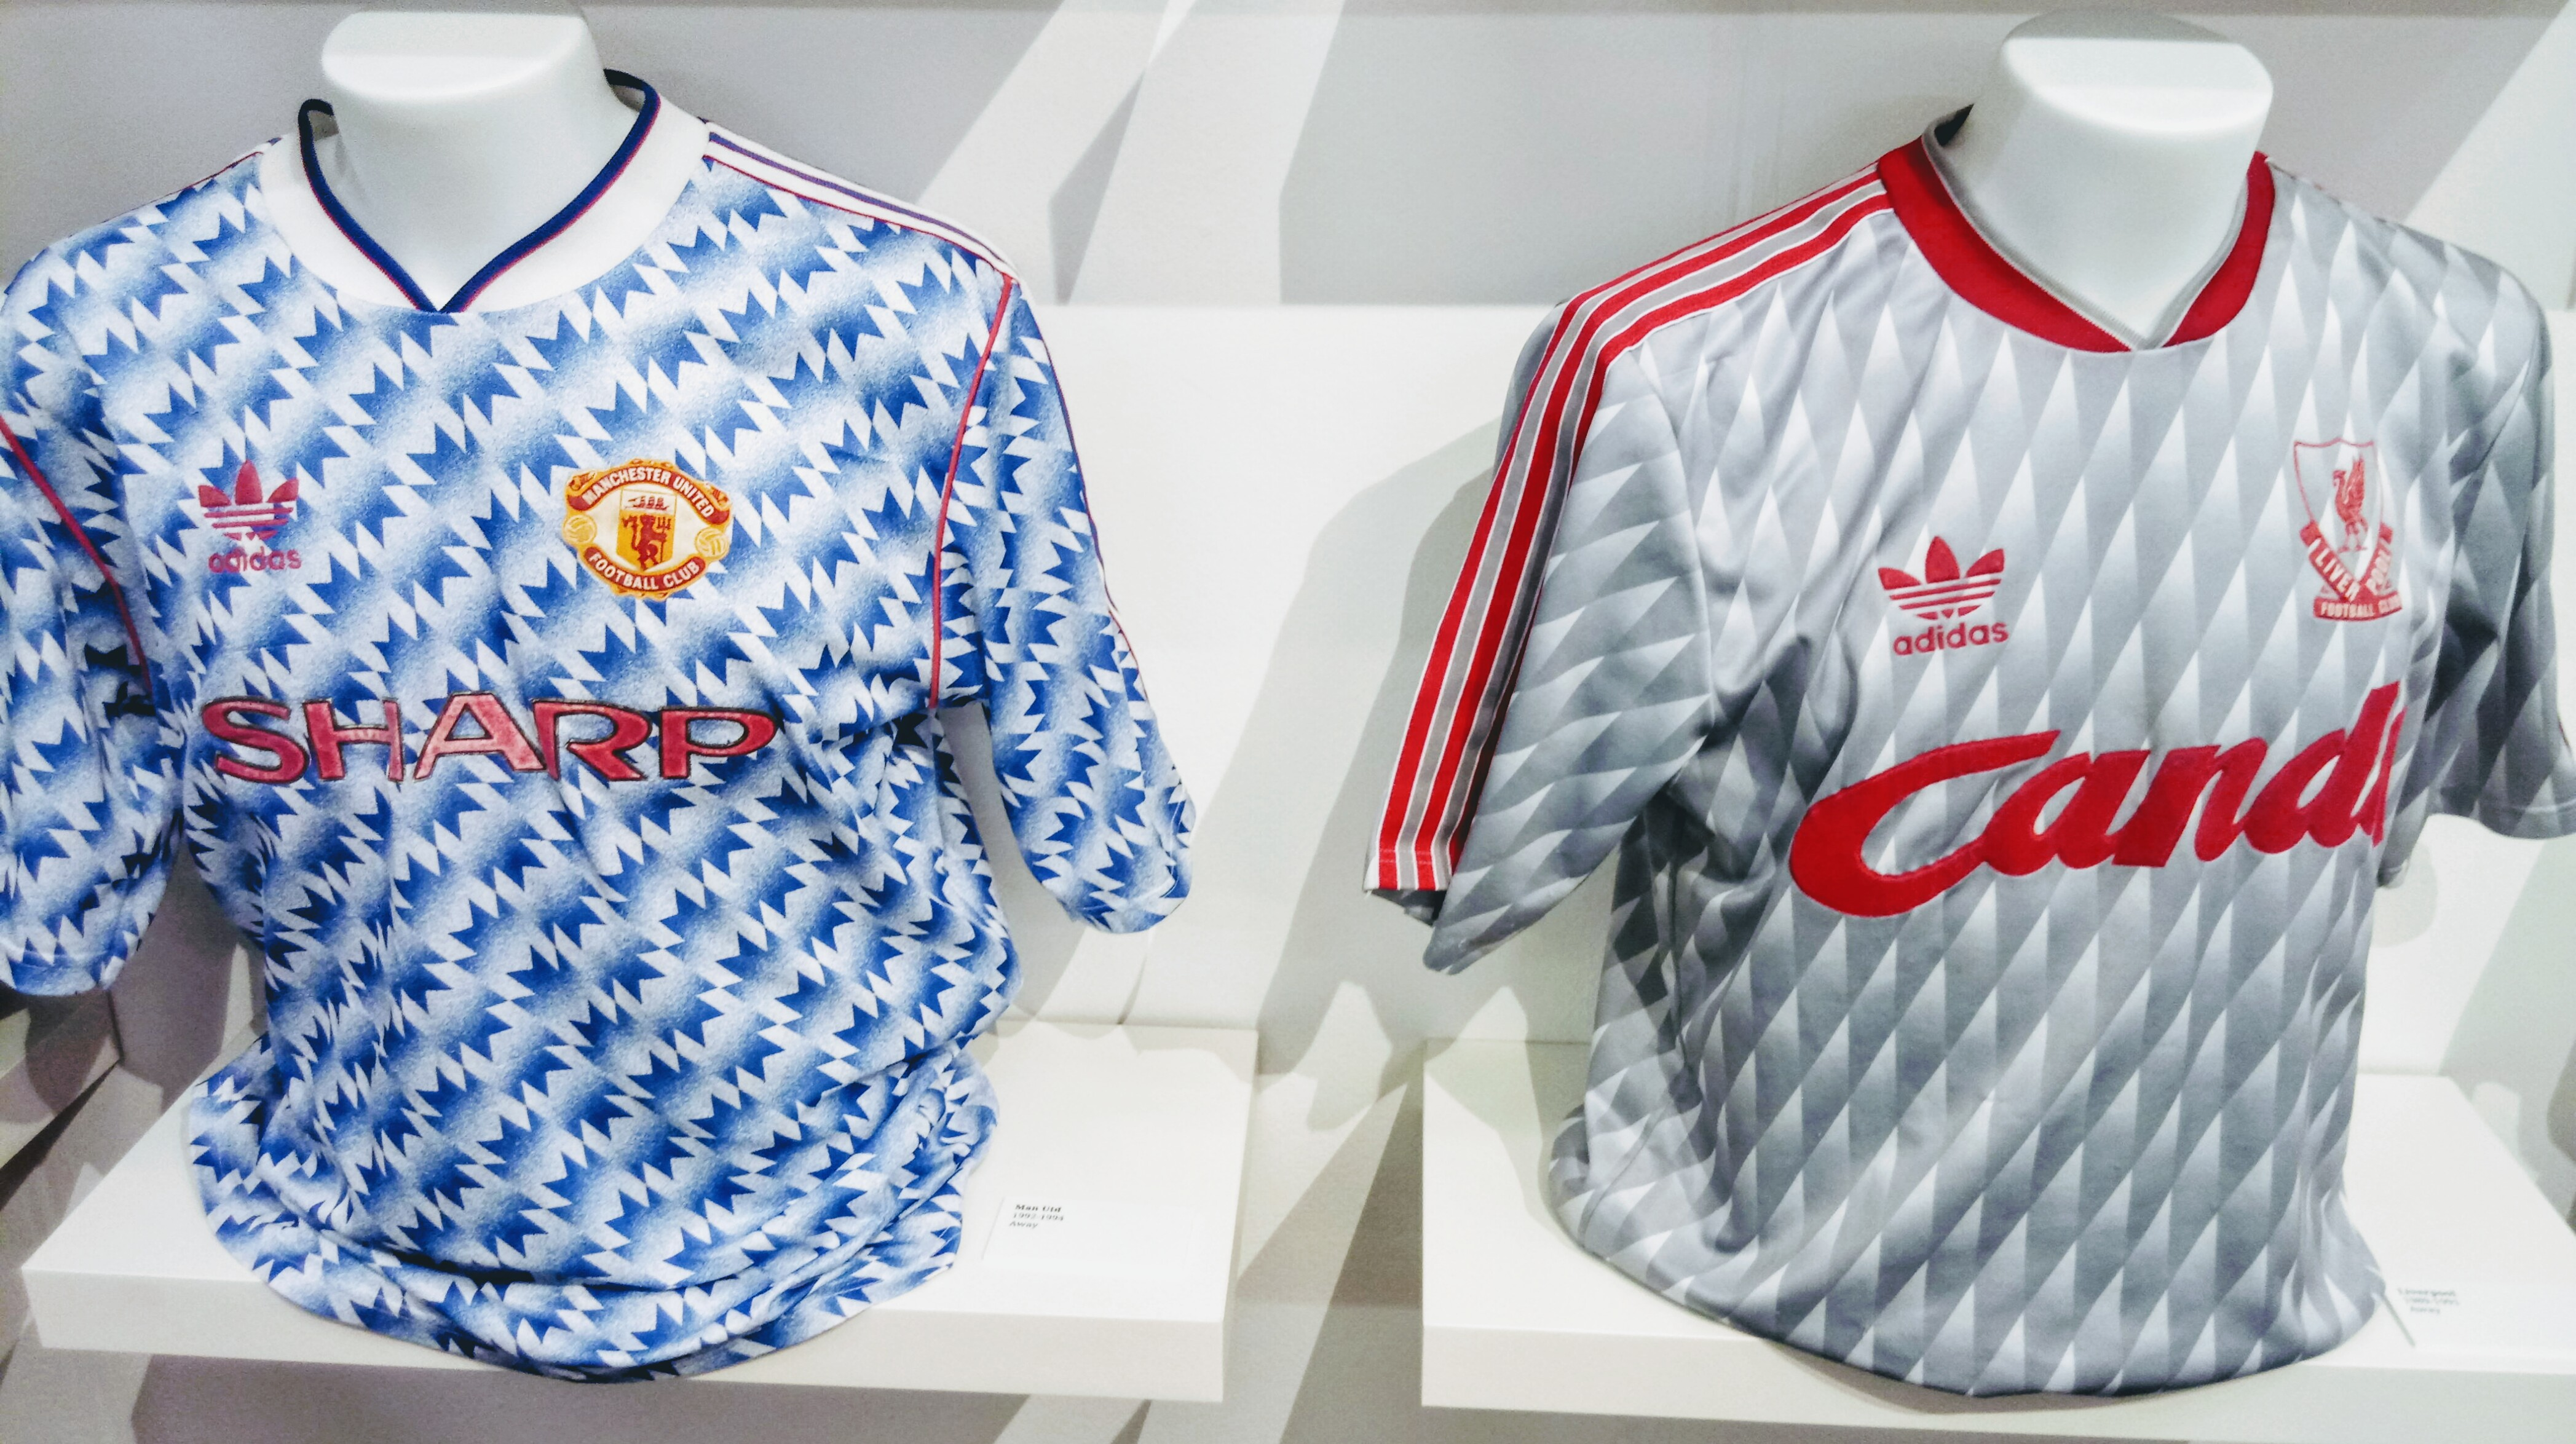 Manchester United, Liverpool, adidas, classics, away kit, snowflake, Candy, silver, blue